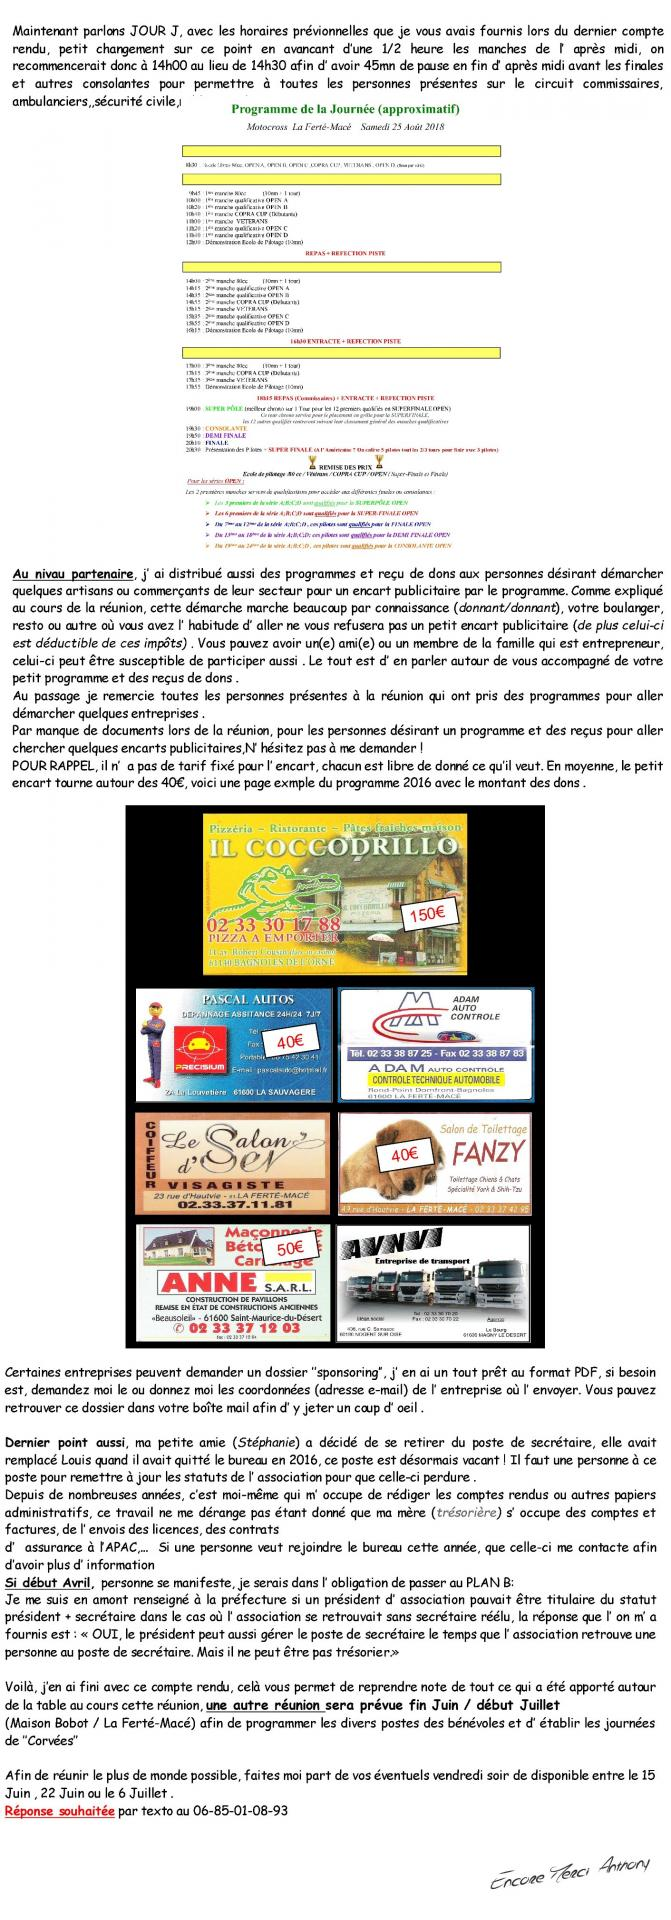 Resume reunion 16 03 2eme page internet